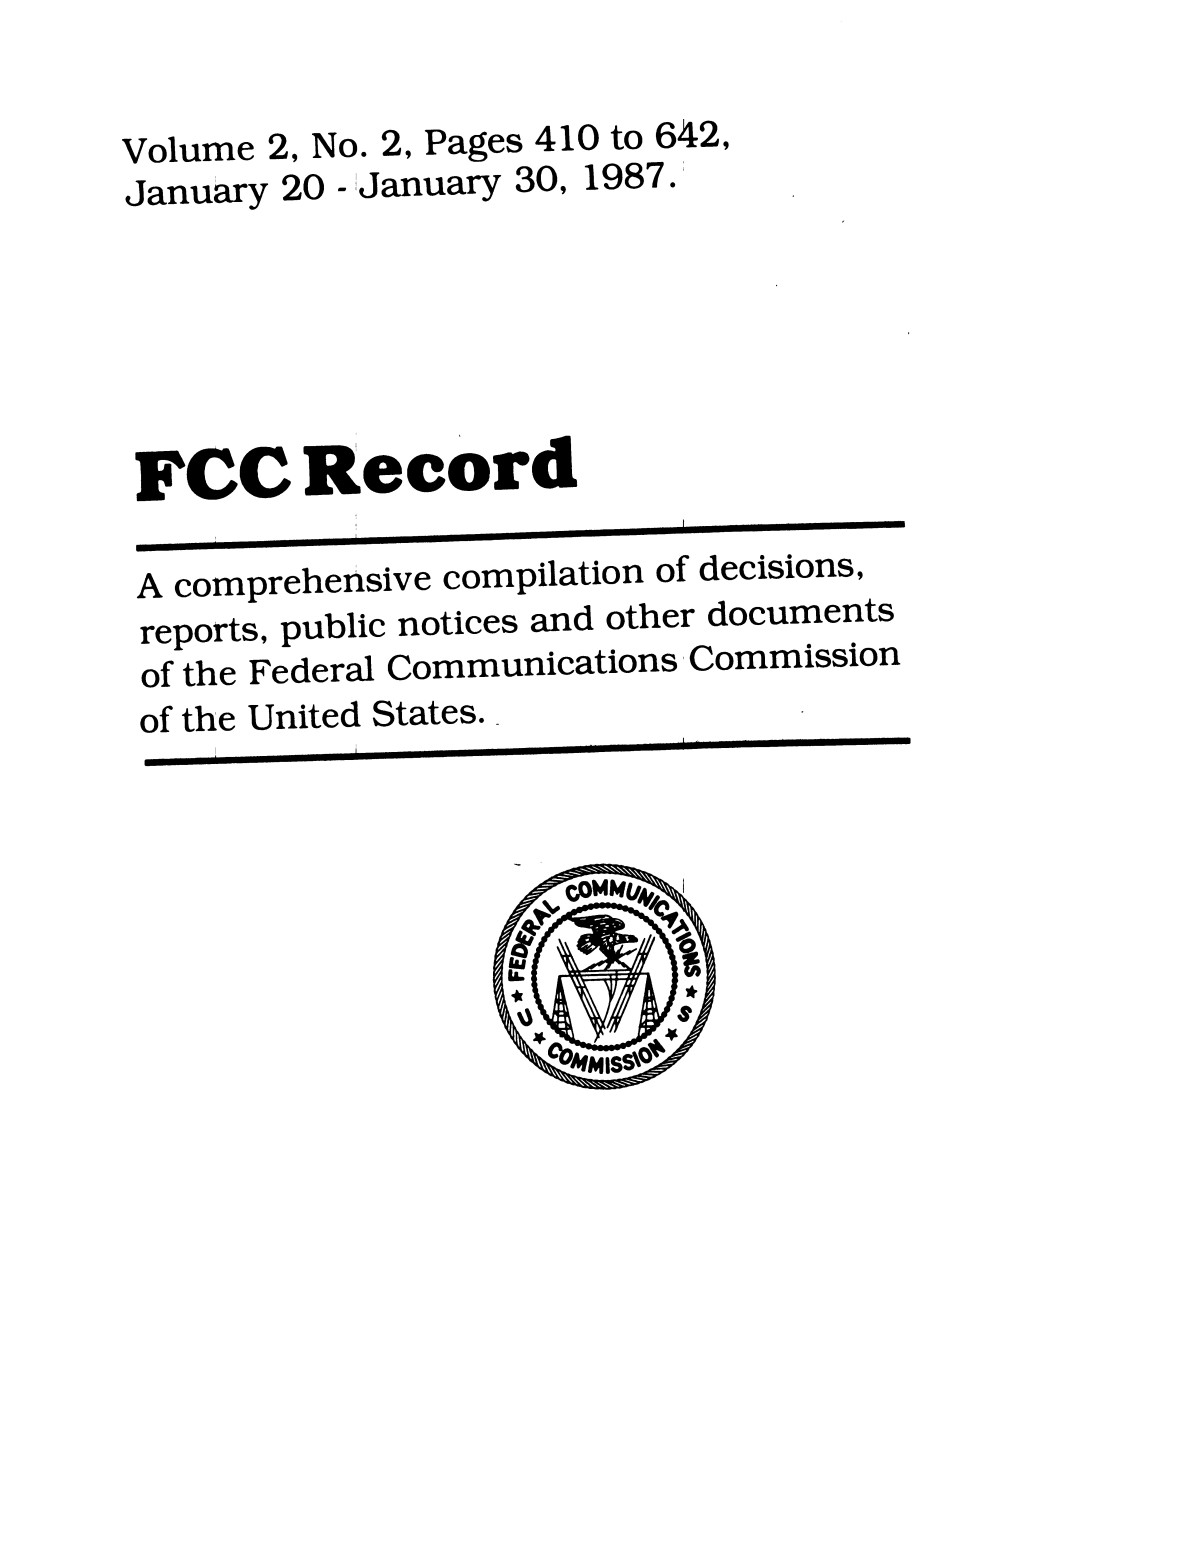 FCC Record, Volume 2, No. 2, Pages 410 to 642, January 20 - January 30, 1987                                                                                                      Front Cover